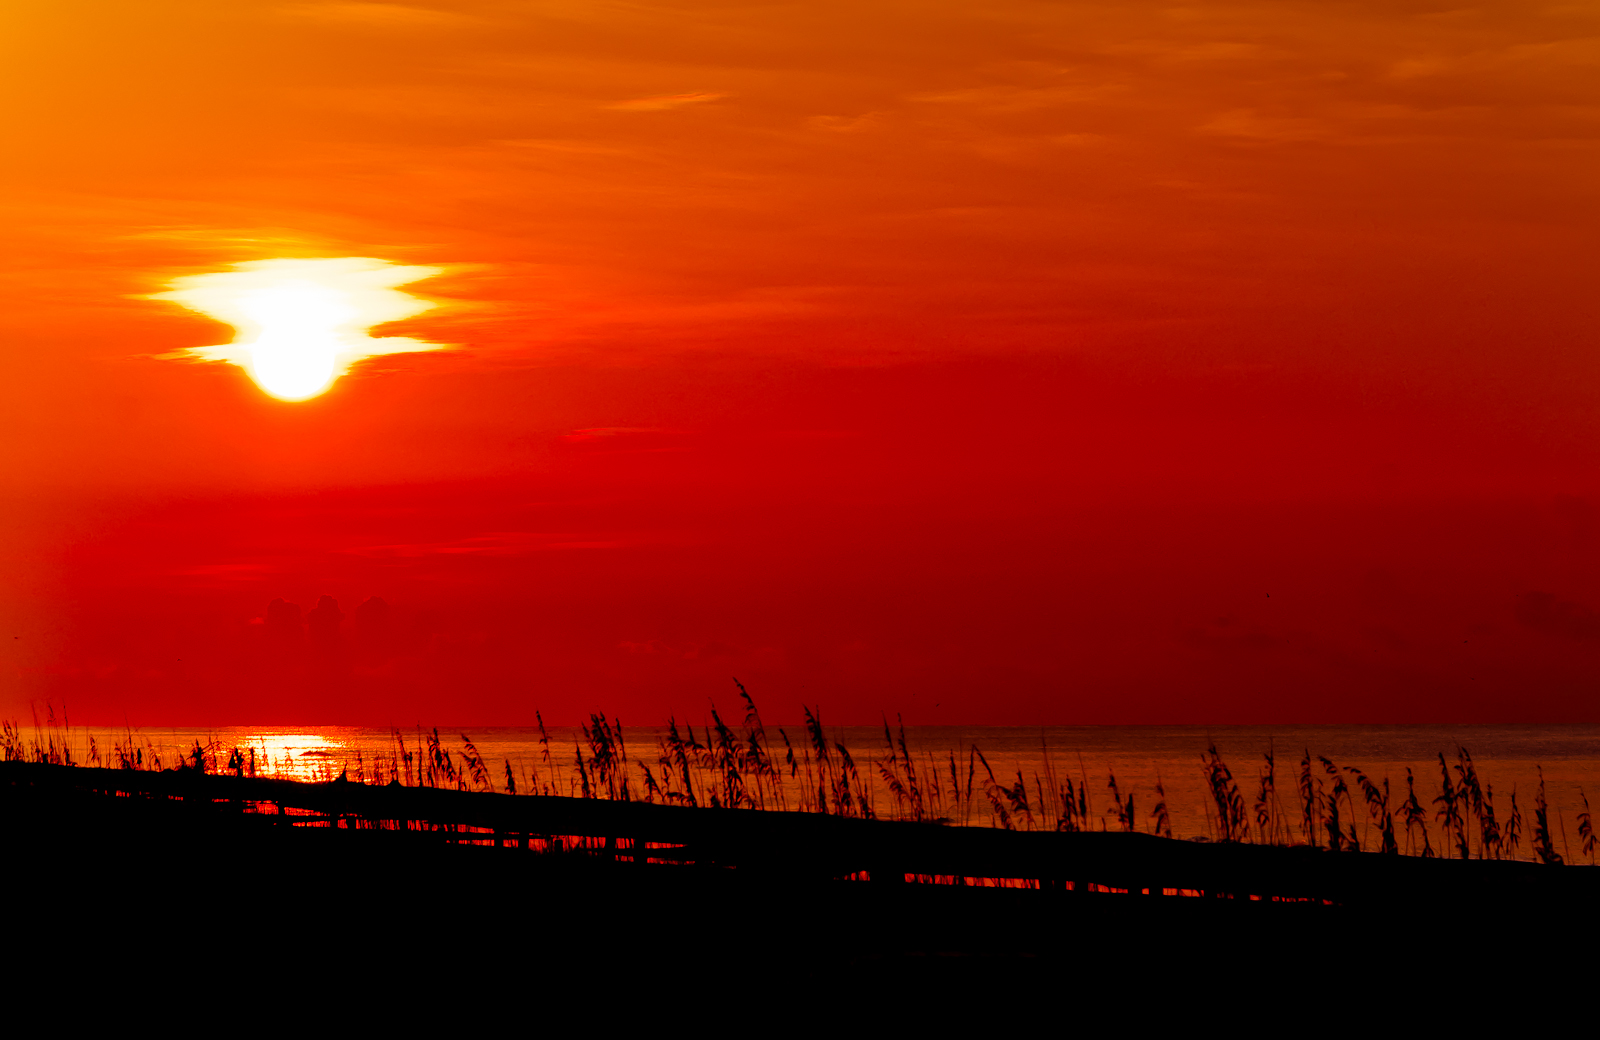 Project 365 [Day 264] Red Sun Rising Over the Gulf of Mexico